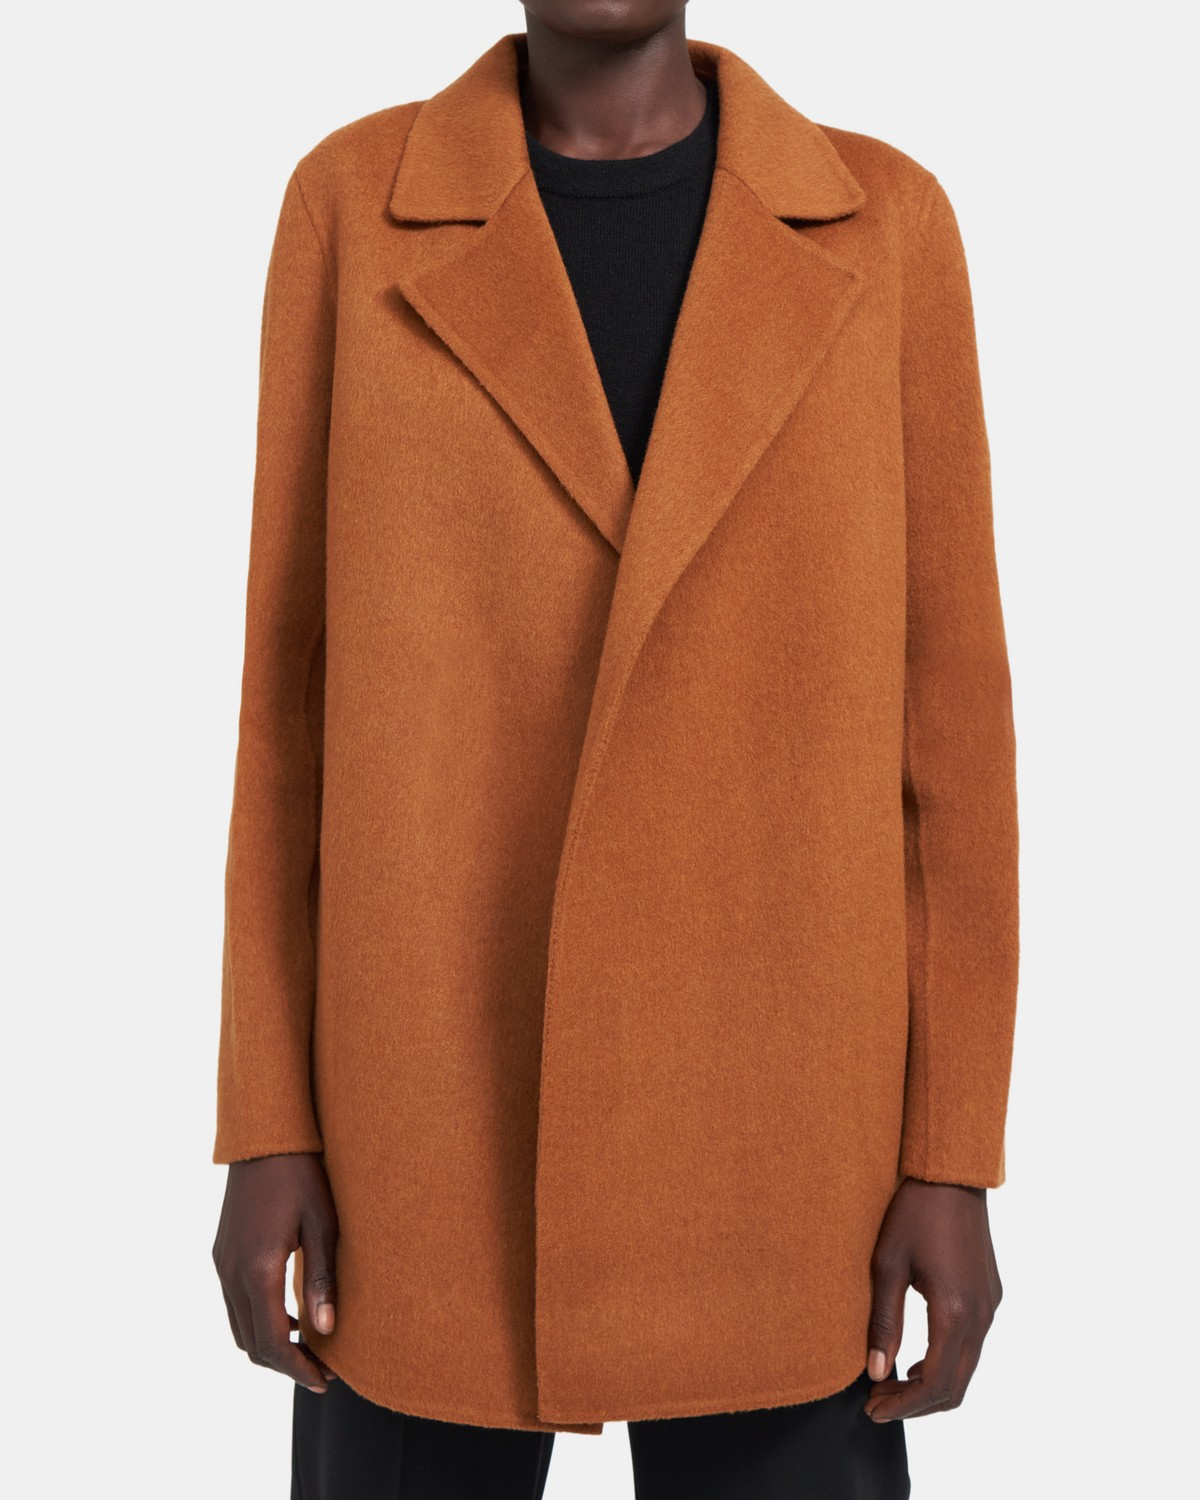 Sileena Jacket in Double-Face Wool-Cashmere